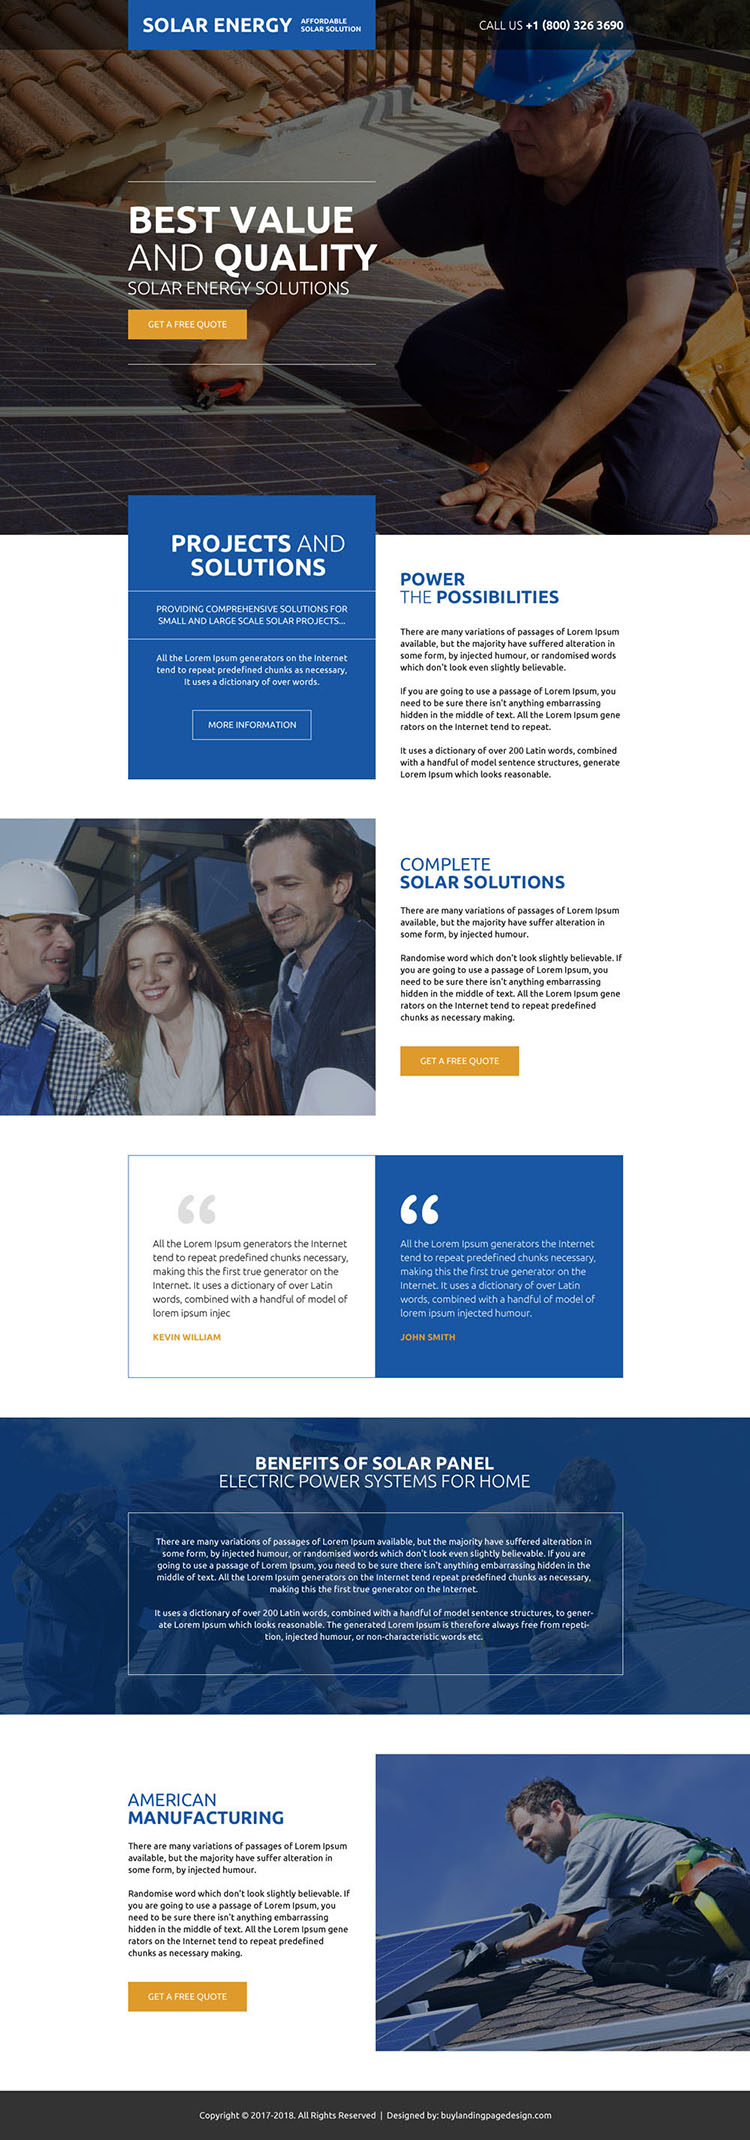 affordable solar solutions free quote landing page design